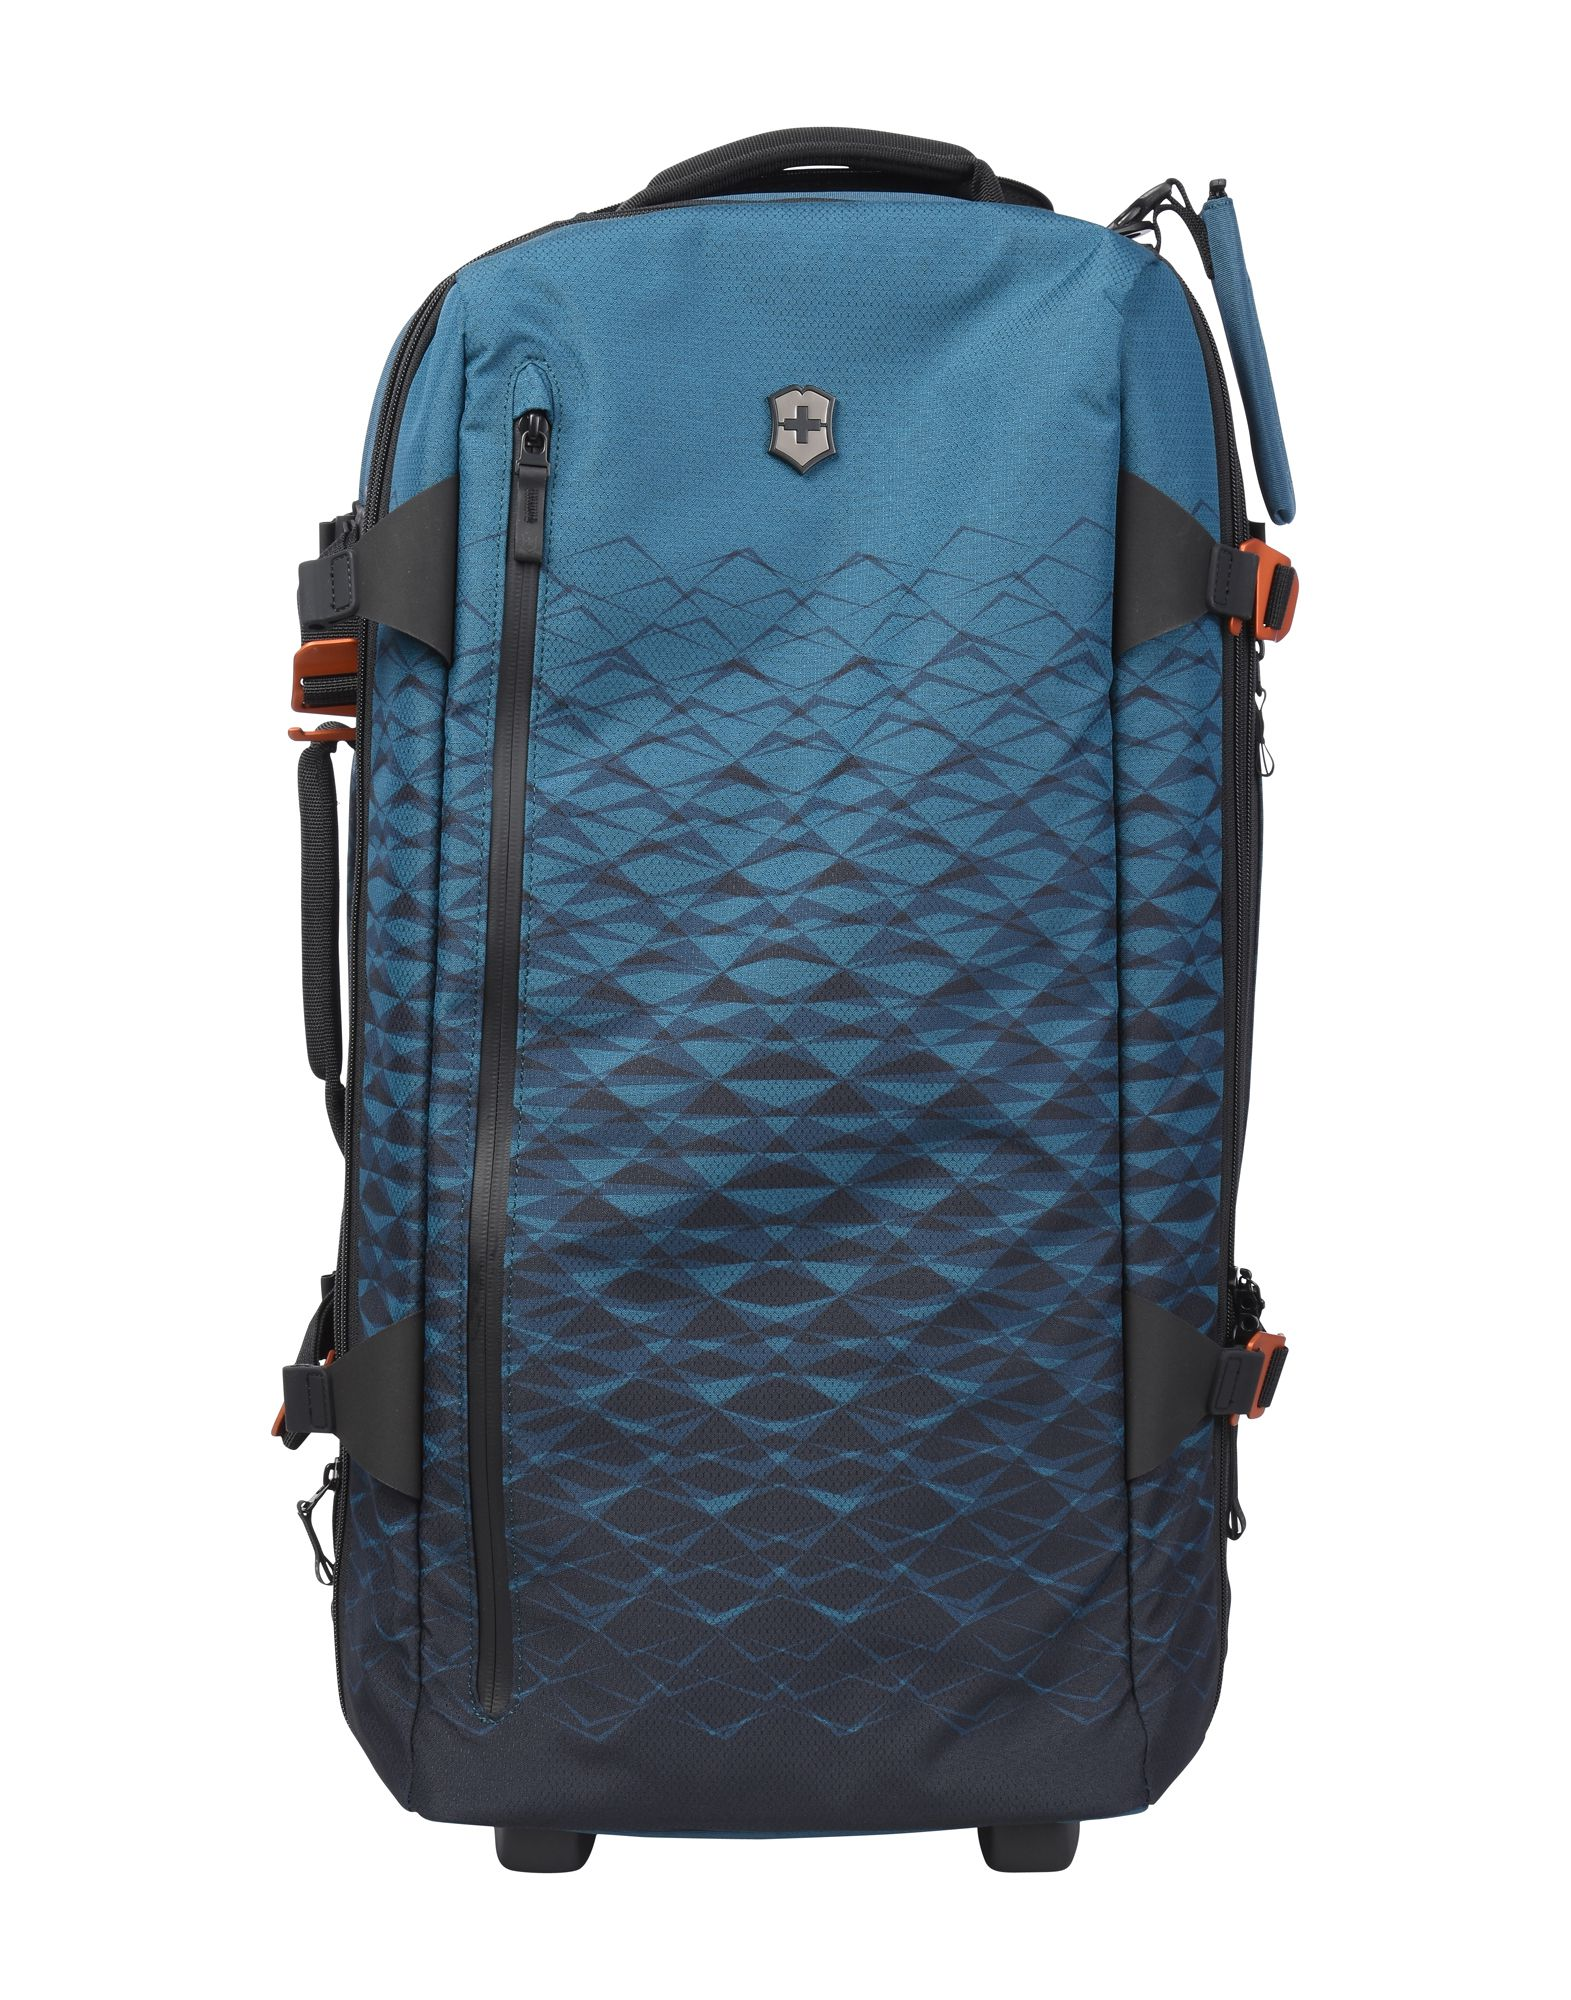 Trolley E Valigie Victorinox Vx Touring 2-Wheel Expandable Medium Duffel - Uomo - Acquista online su